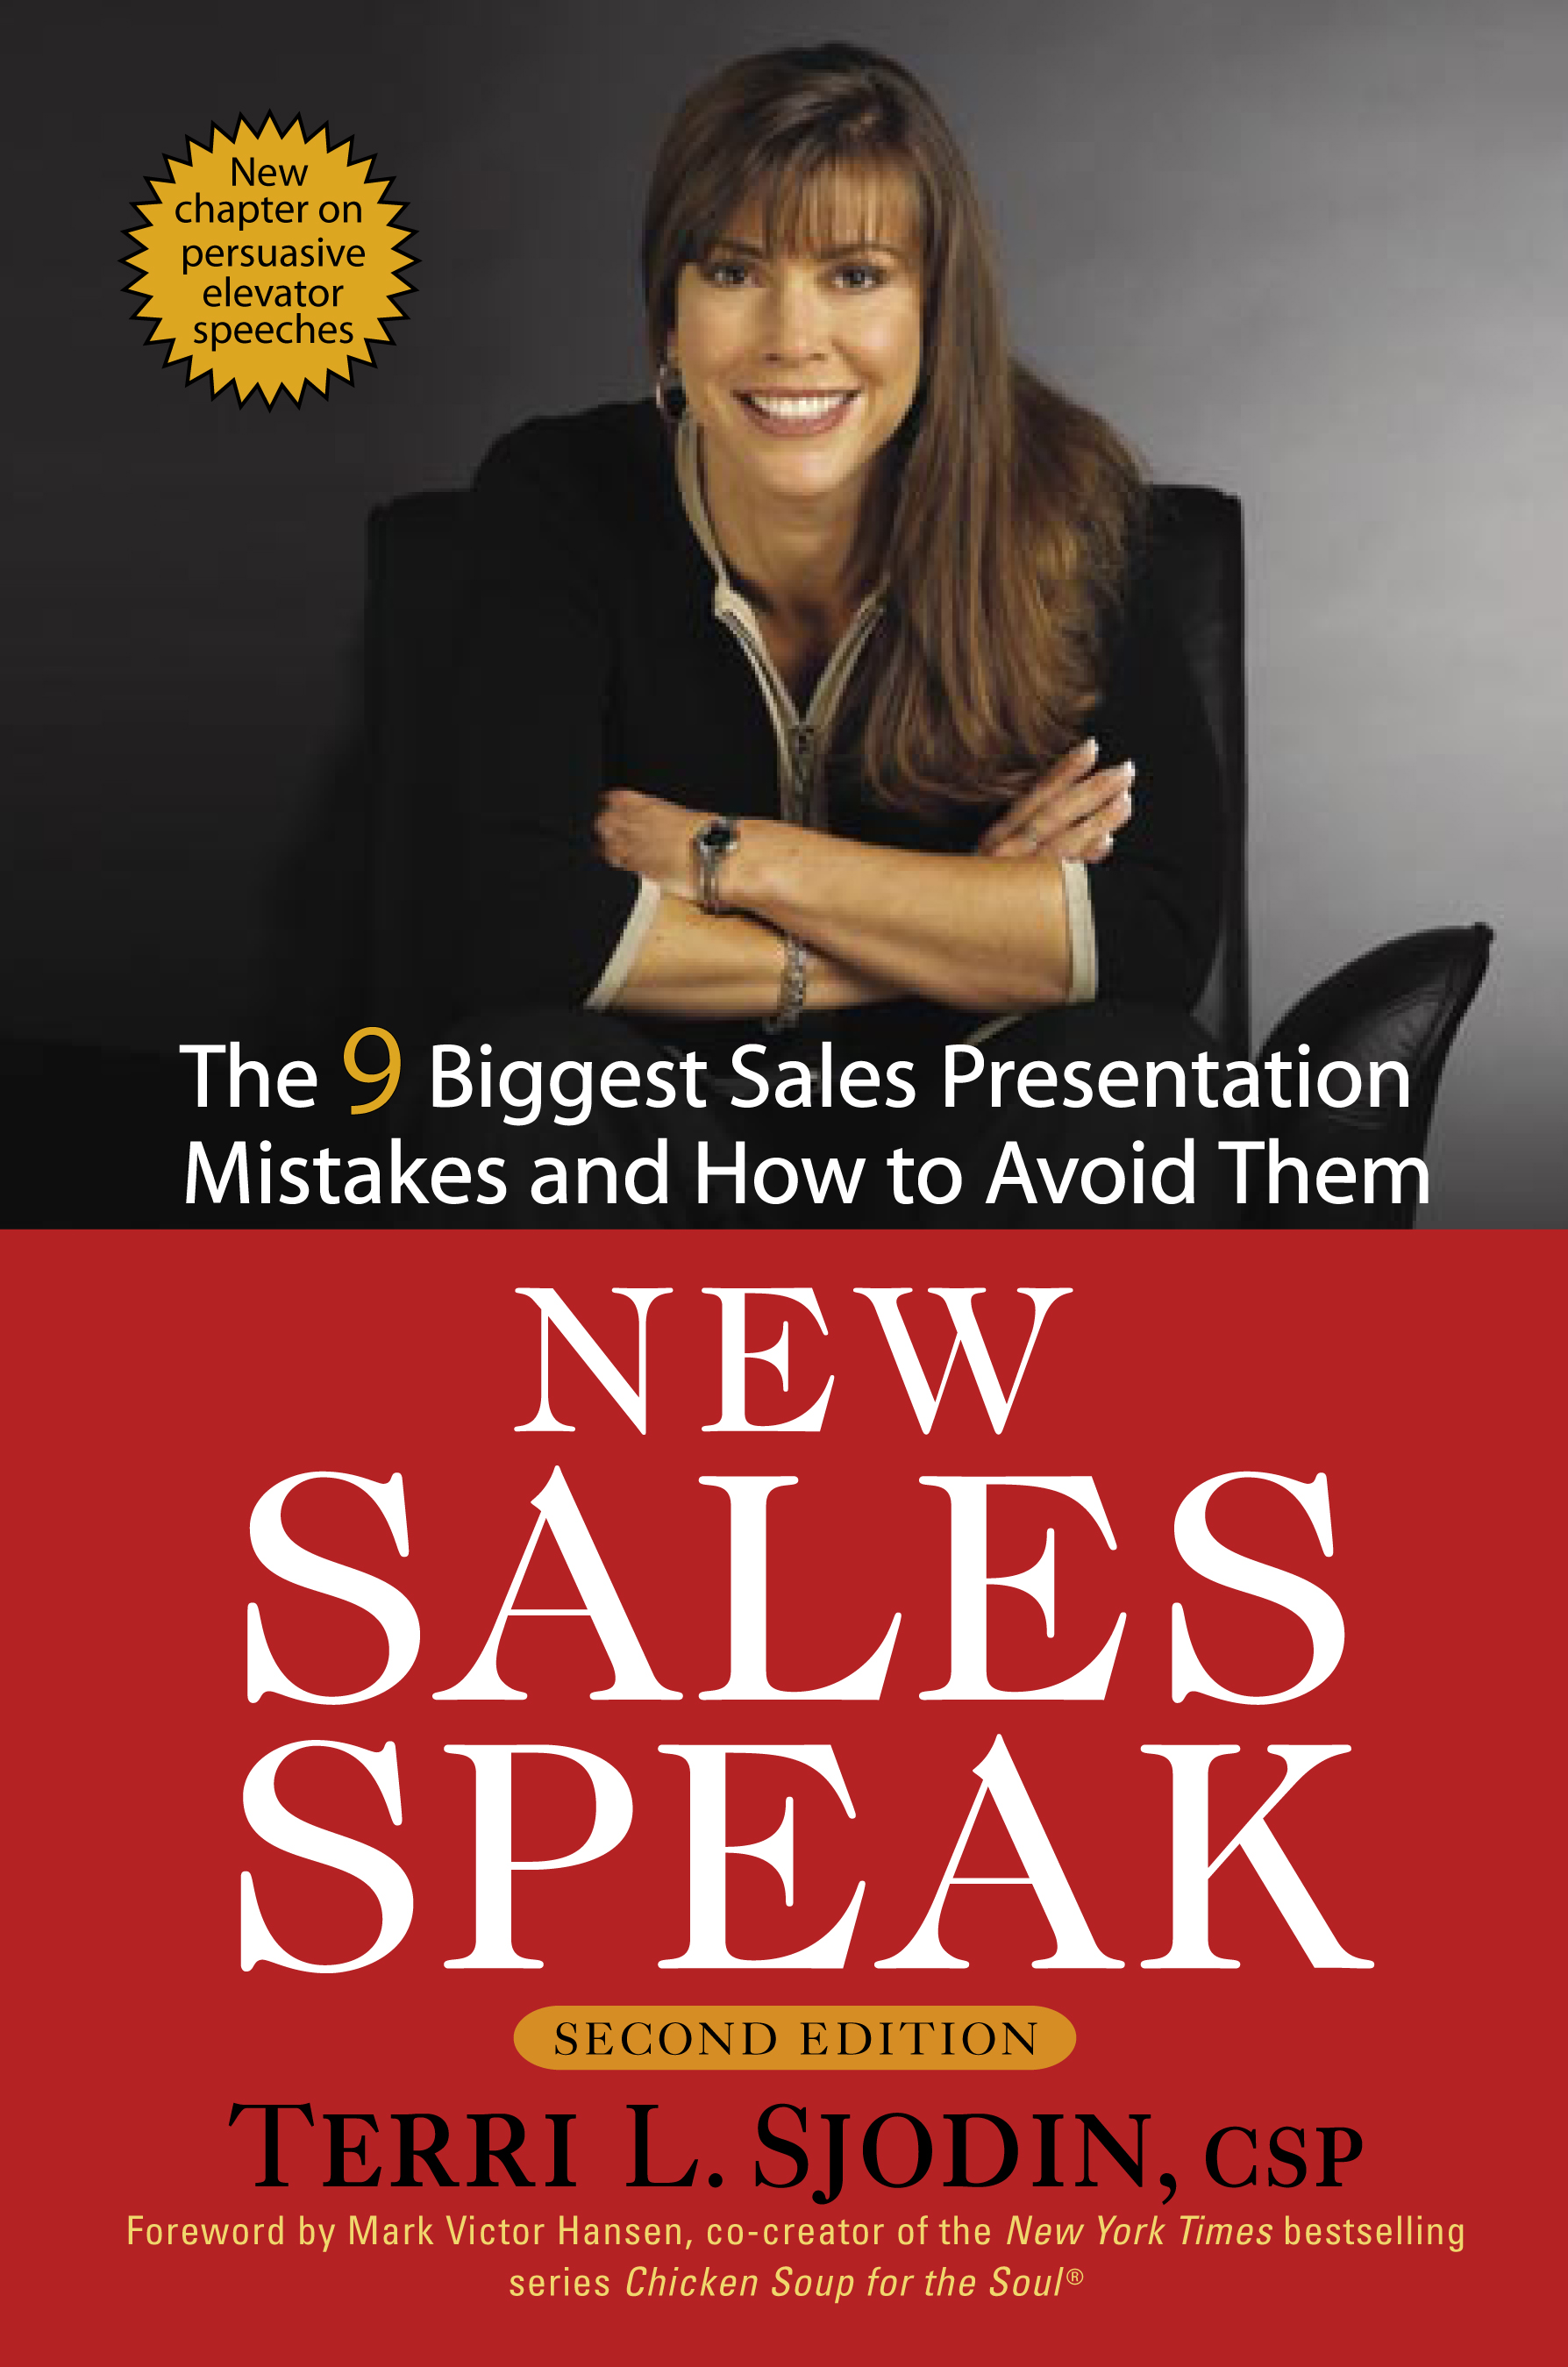 New Sales Speak - Second Edition Book Cover